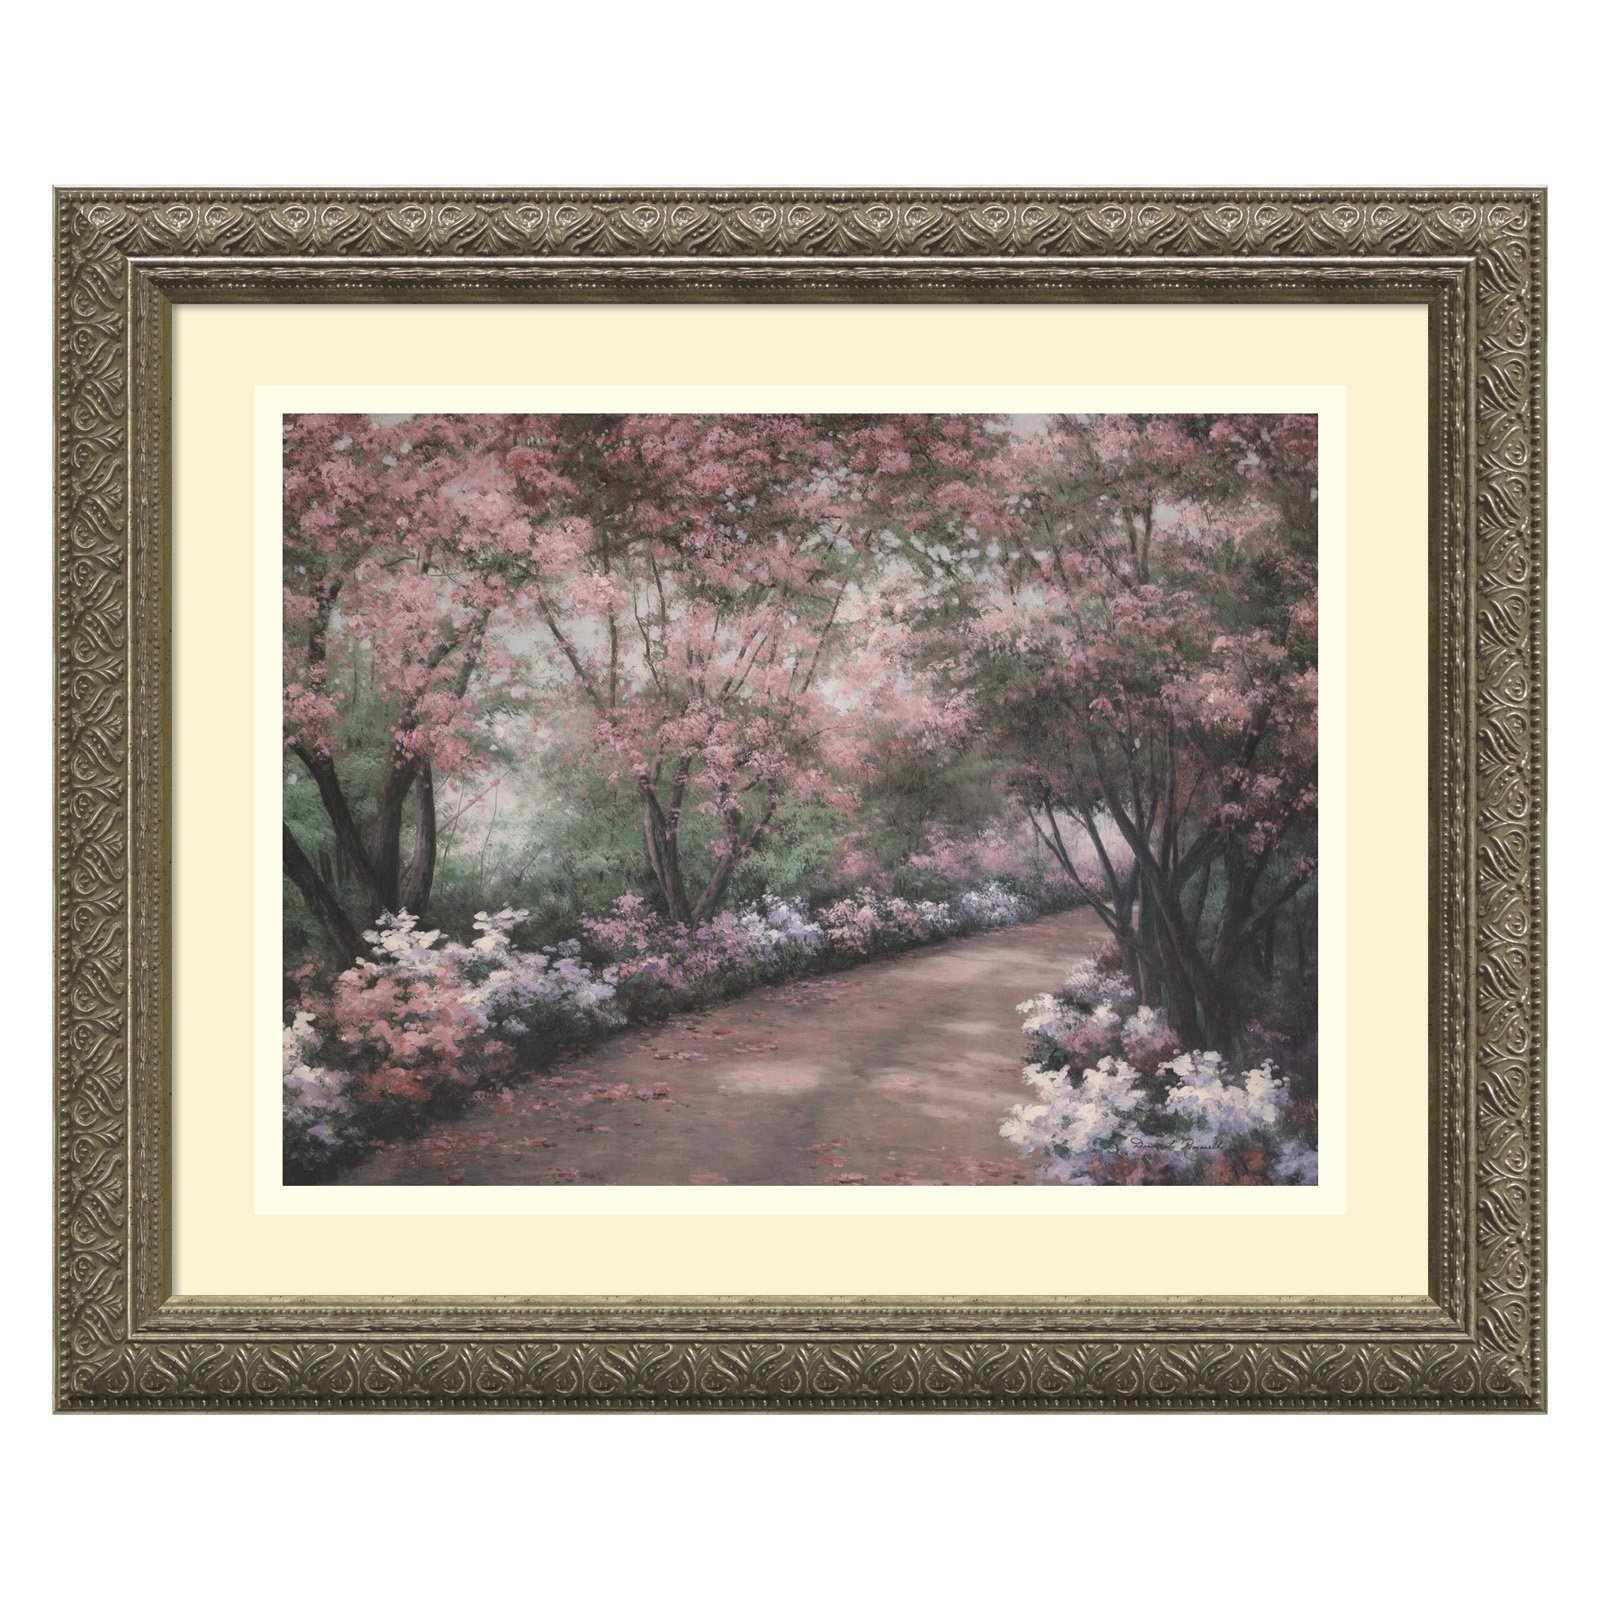 Azalea Walk Framed Wall Art by Diane Romanello - 17.12W x 14.12H in.